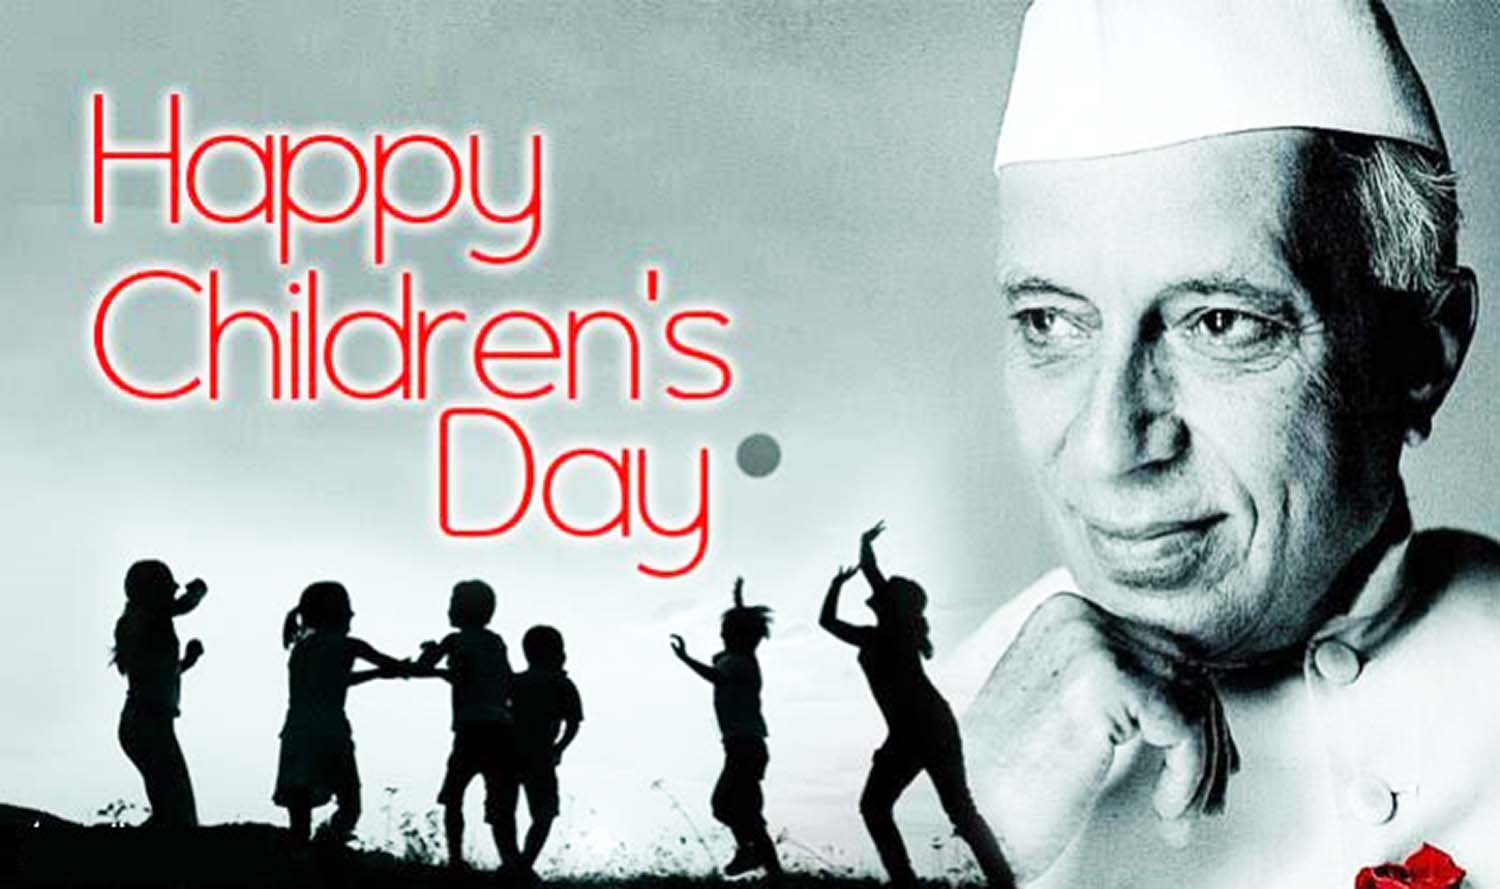 children's day images in india